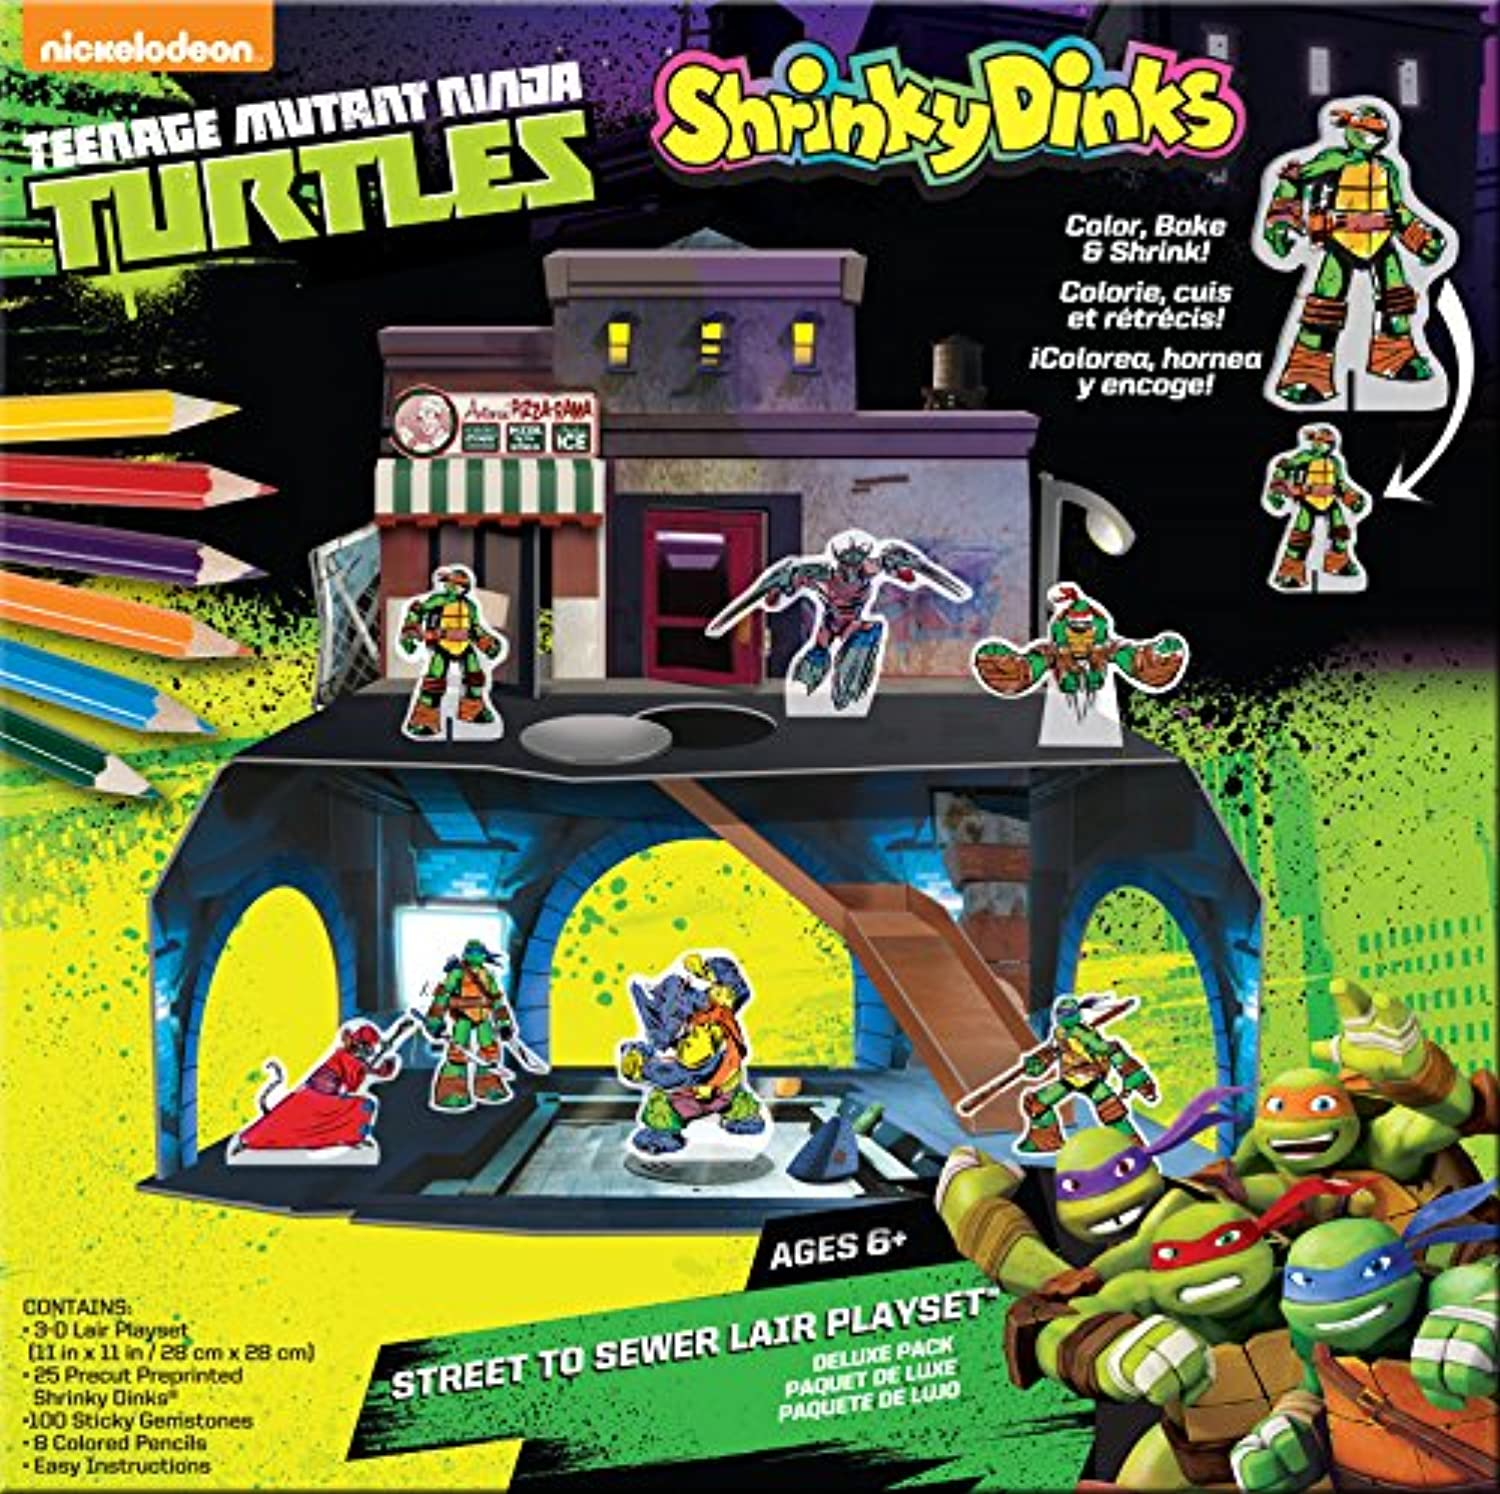 Teenage Mutant Ninja Turtles Shrinky Dinks Playset